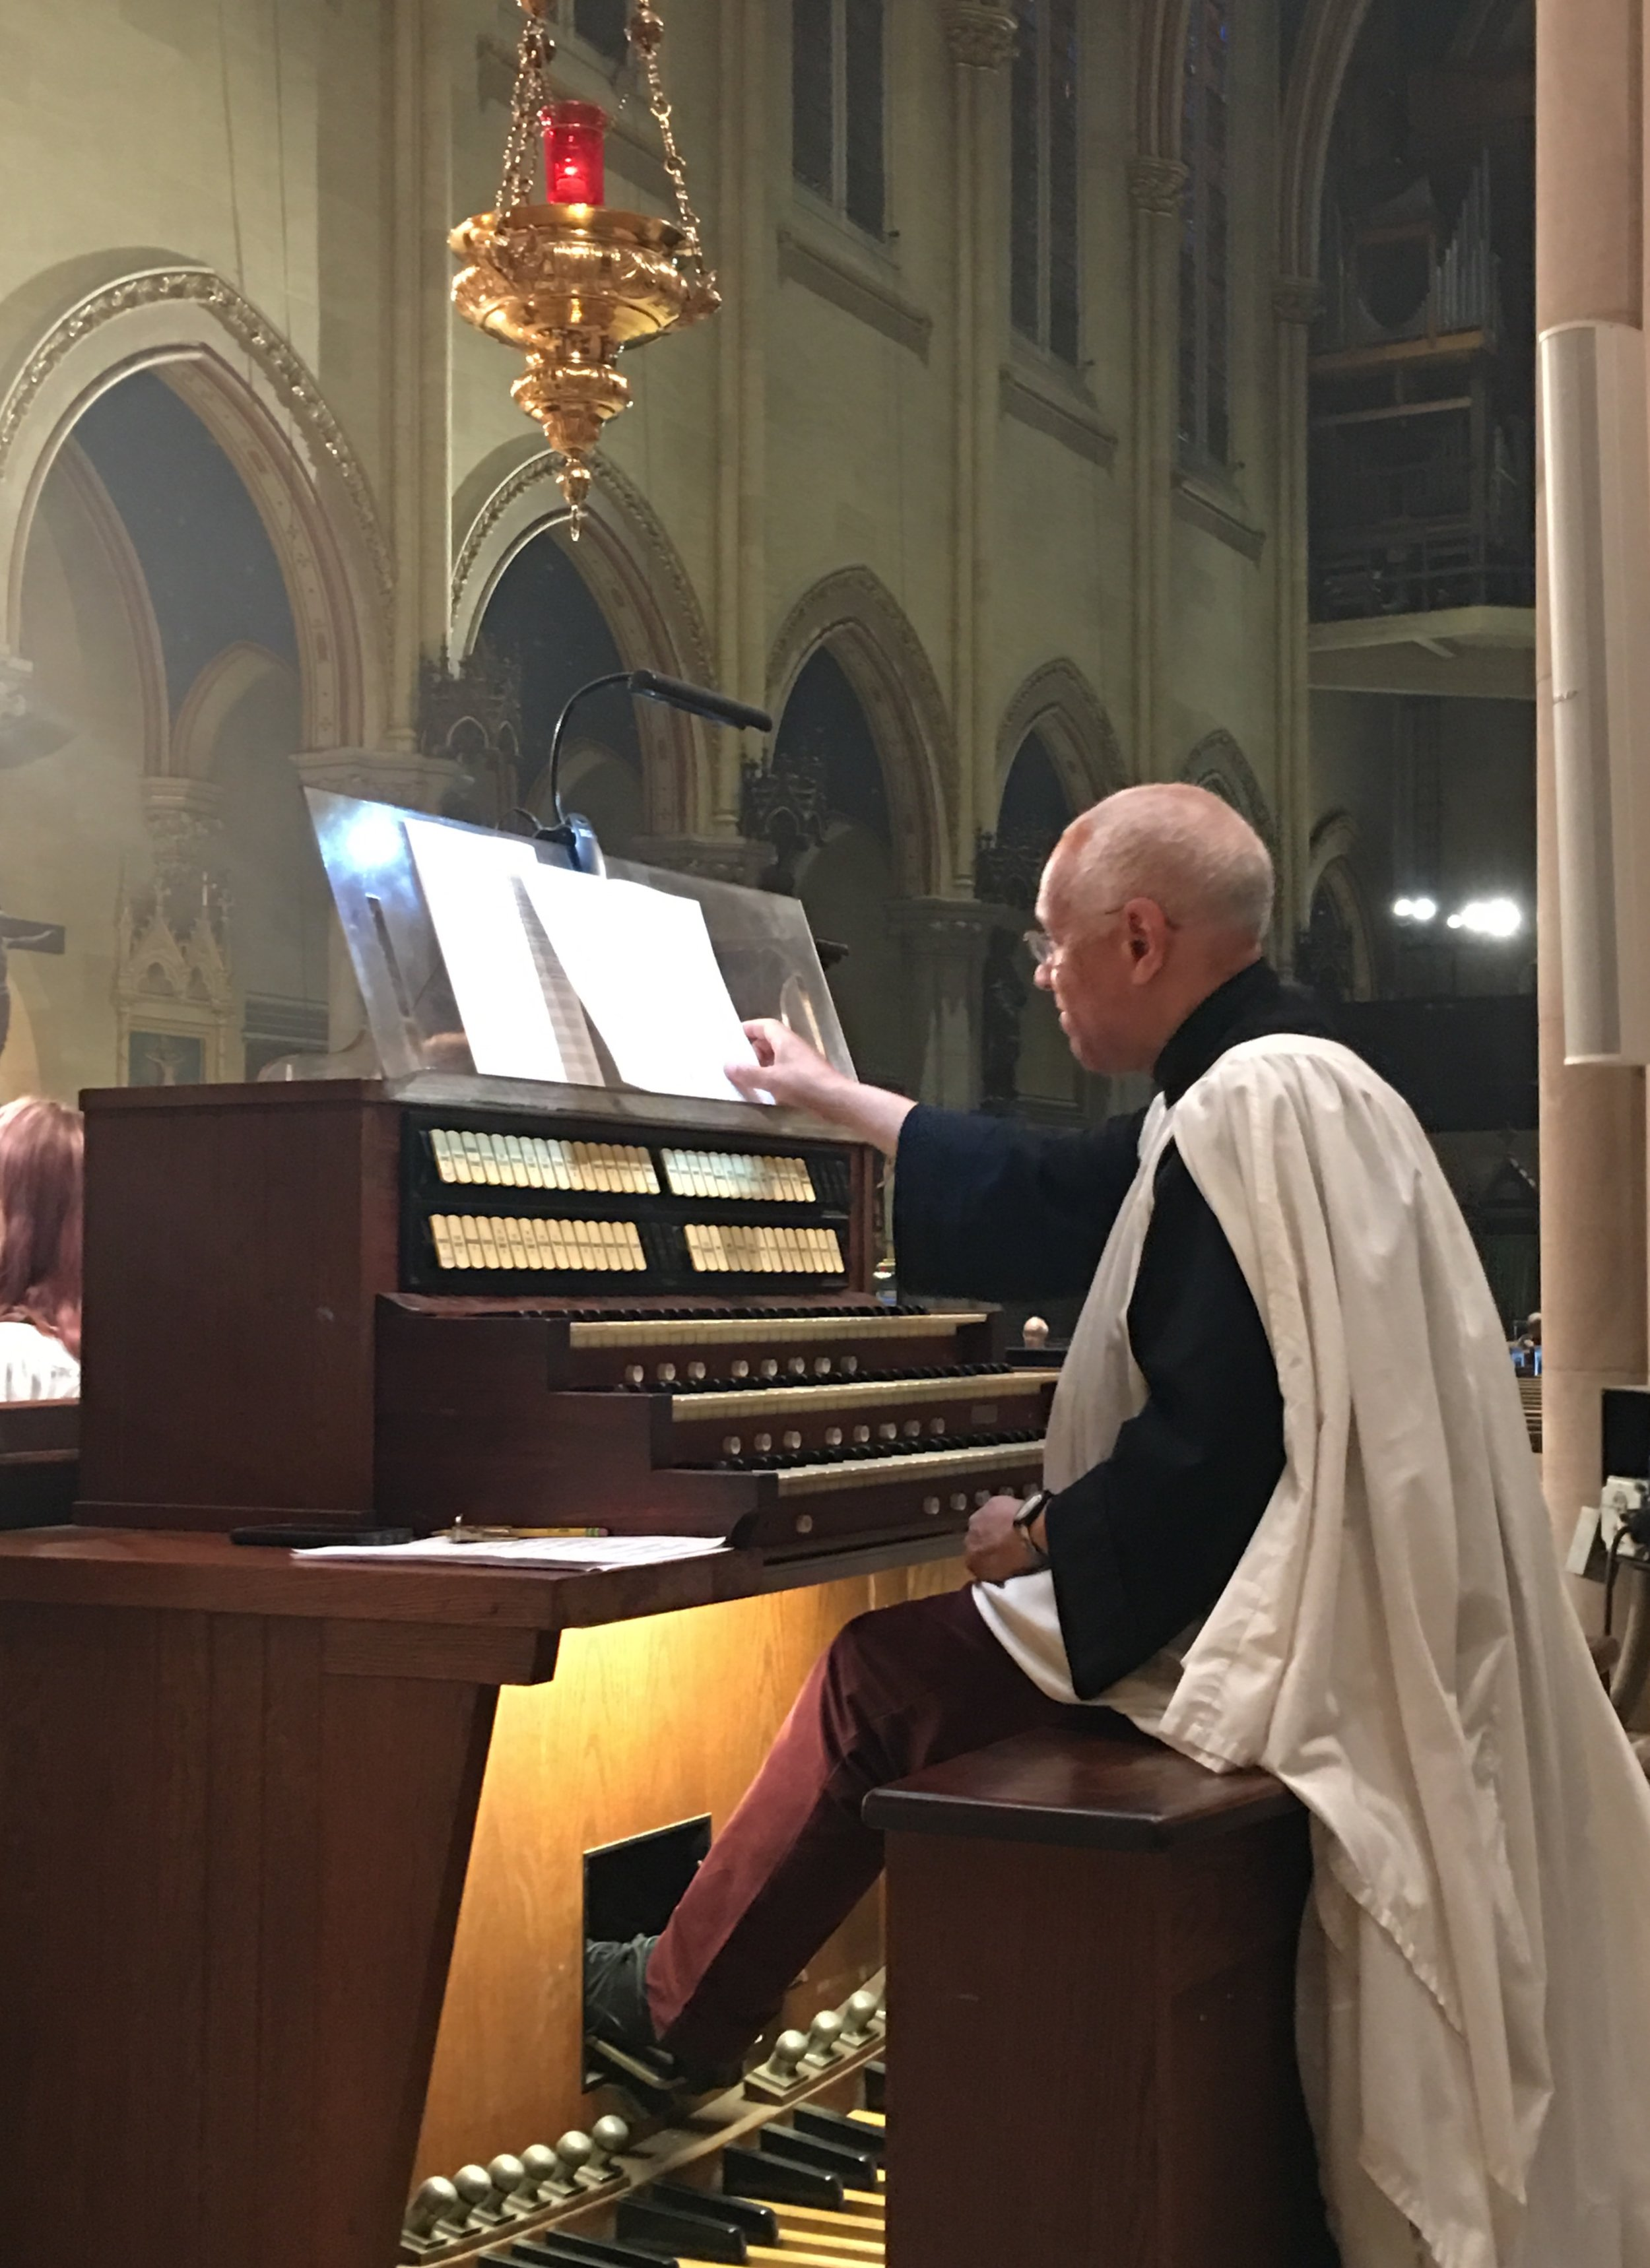 Dr. David Hurd at the organ console in the chancel during the Liturgy of the Word at the Solemn Mass.  Photo:  Renee Pecquex